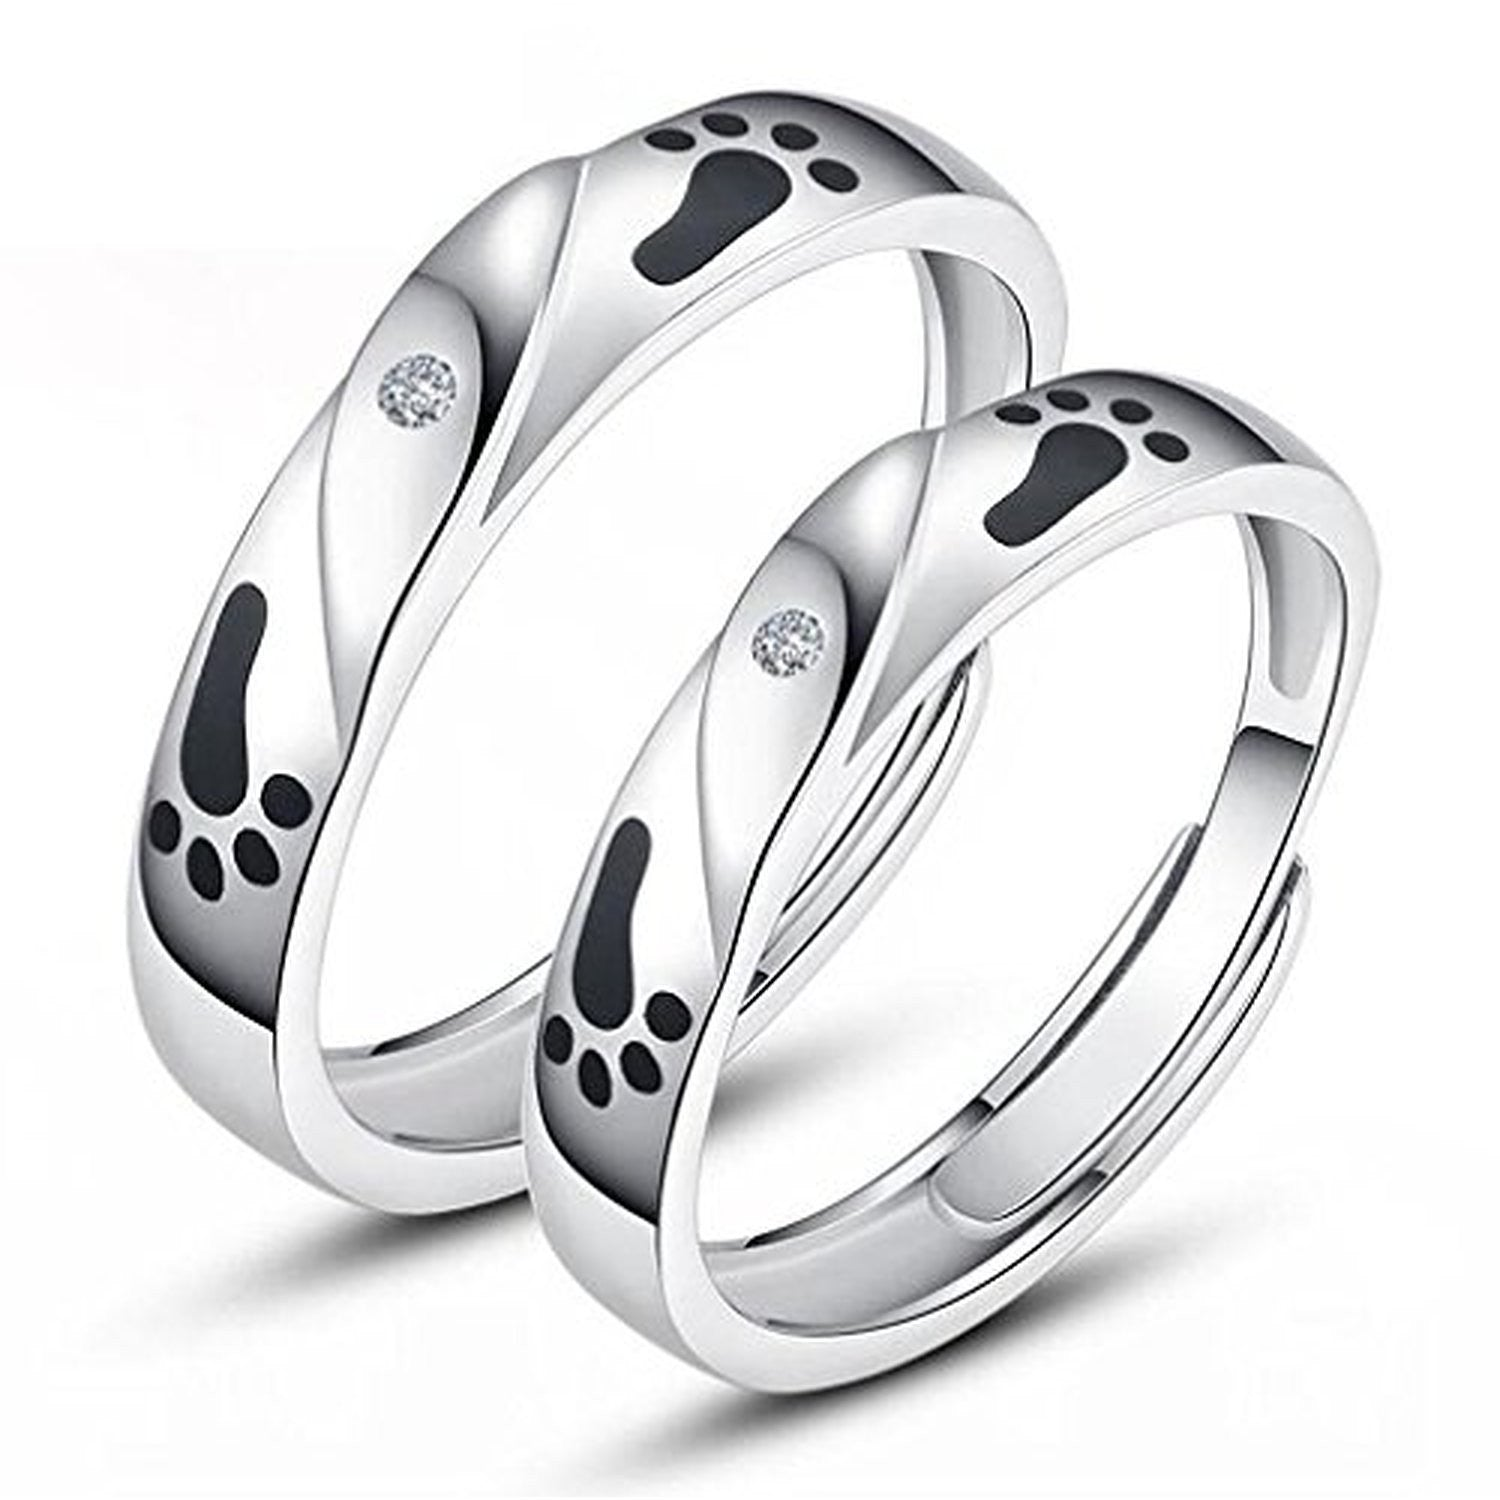 detail couple product stone band with steel fashion engagement women s wholesale black stainless wedding ring rings